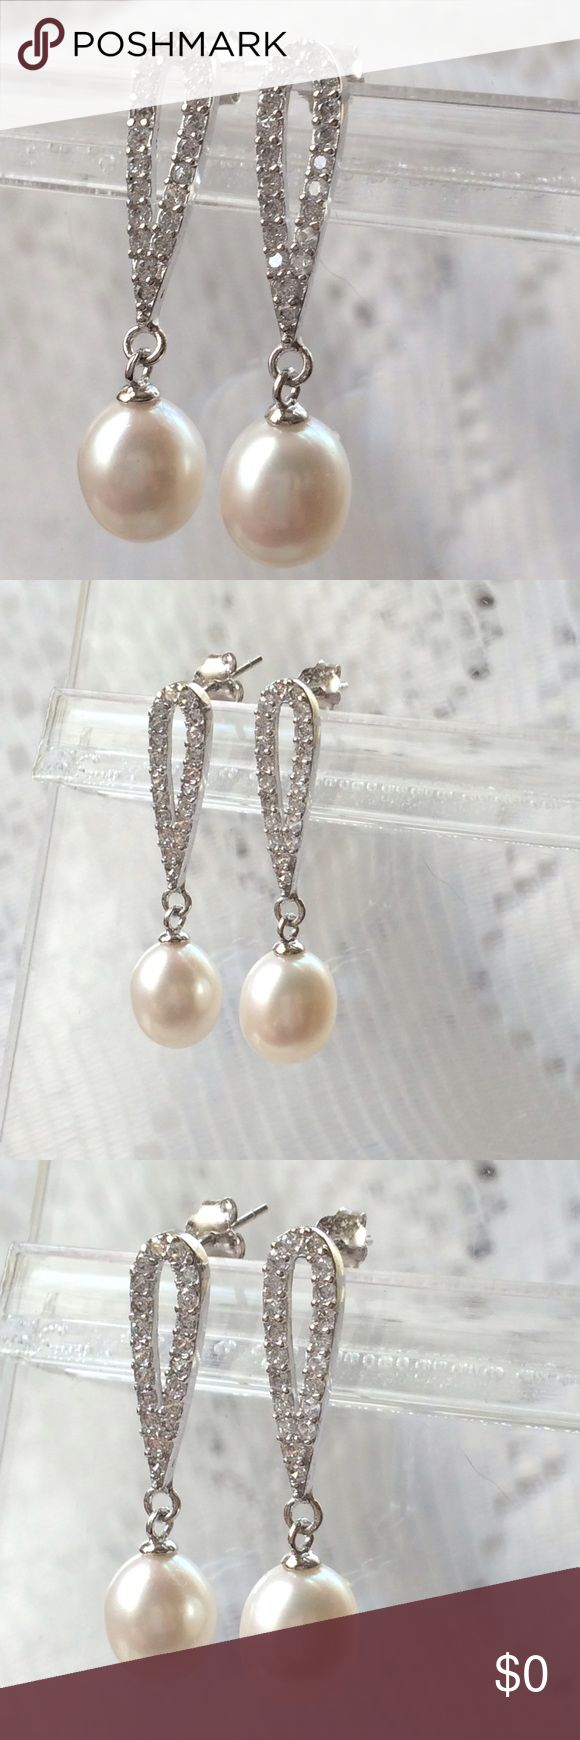 XTTRA PICS of NATURAL PEARLS Showing extra pictures of CRYSTAL NATURAL PEARL EARRINGS. Jewelry Earrings